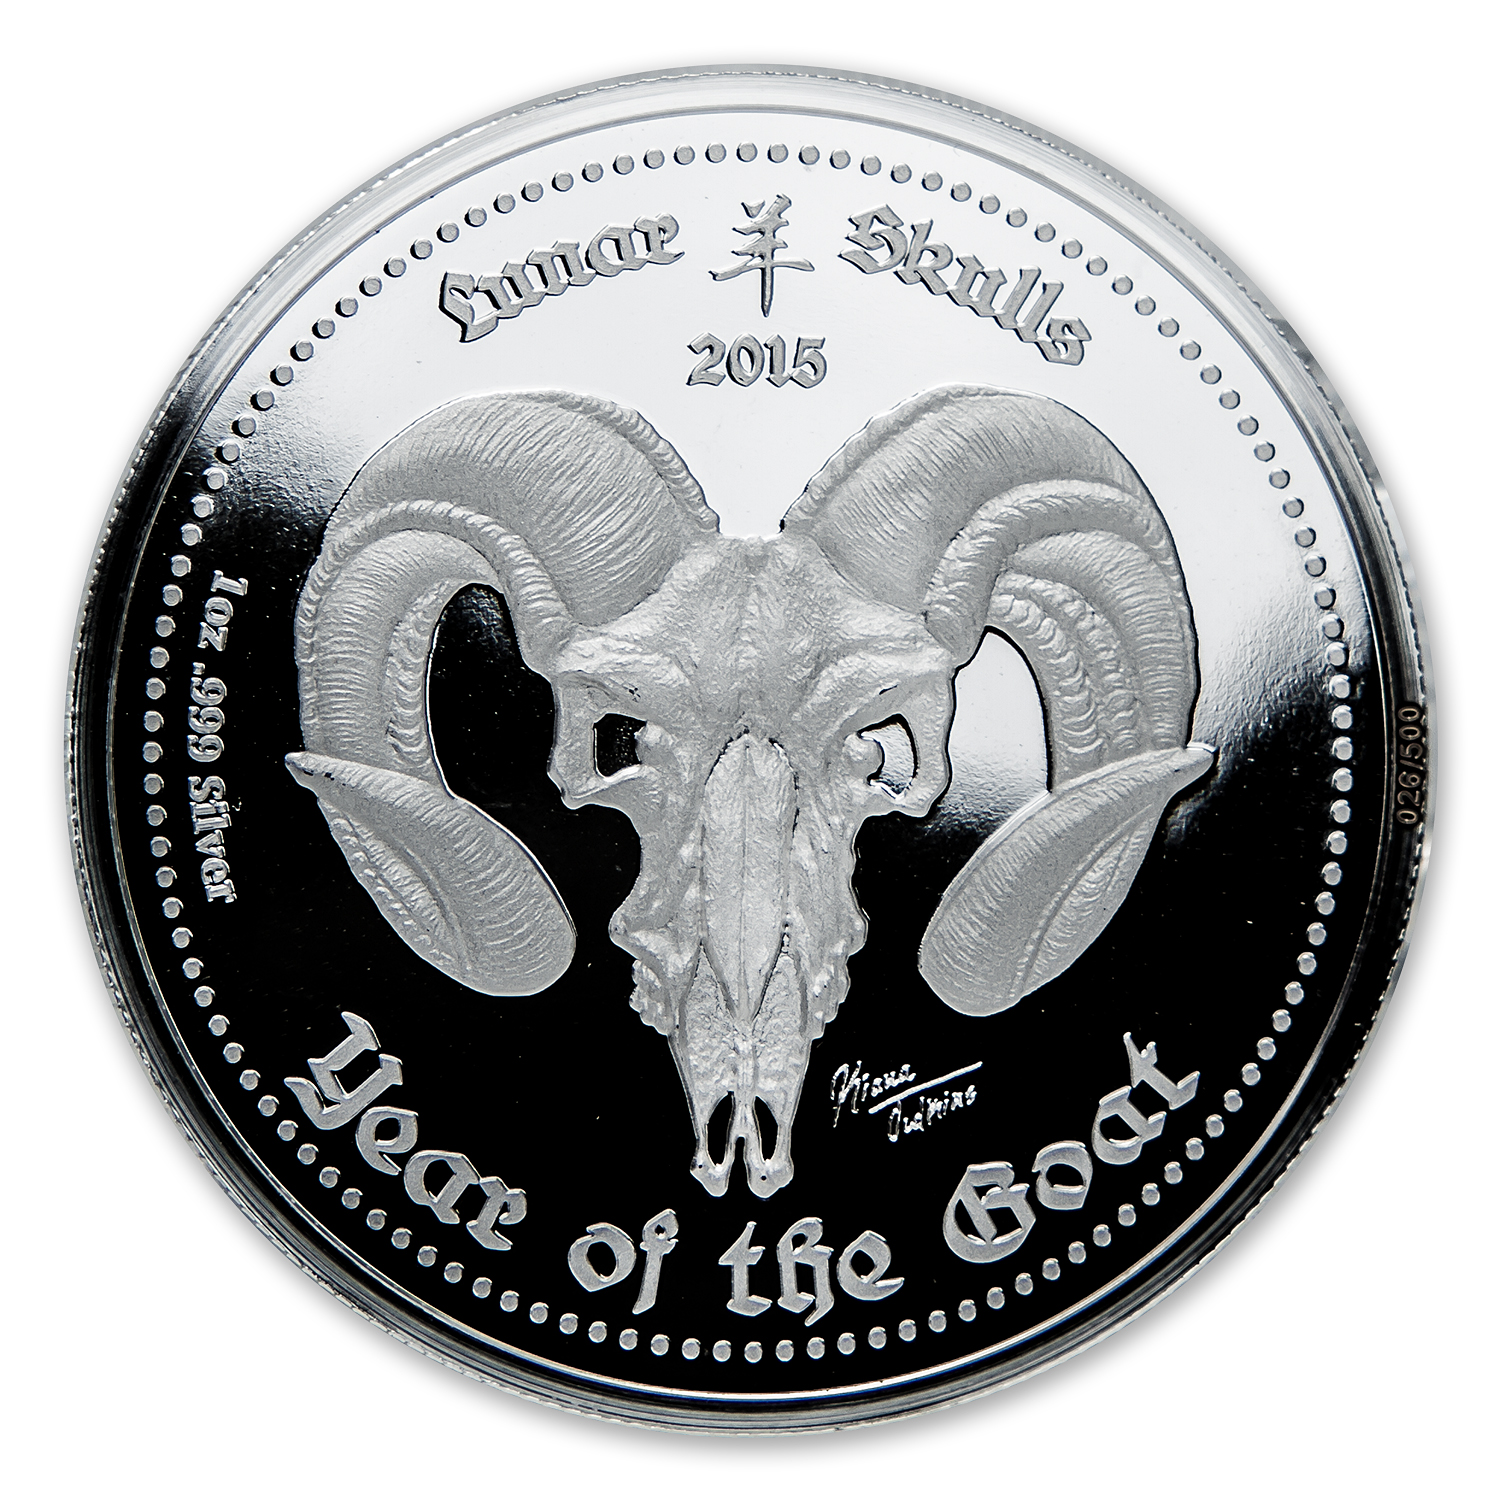 2015 Ghana 1 oz Proof Silver Lunar Skulls Year of the Goat